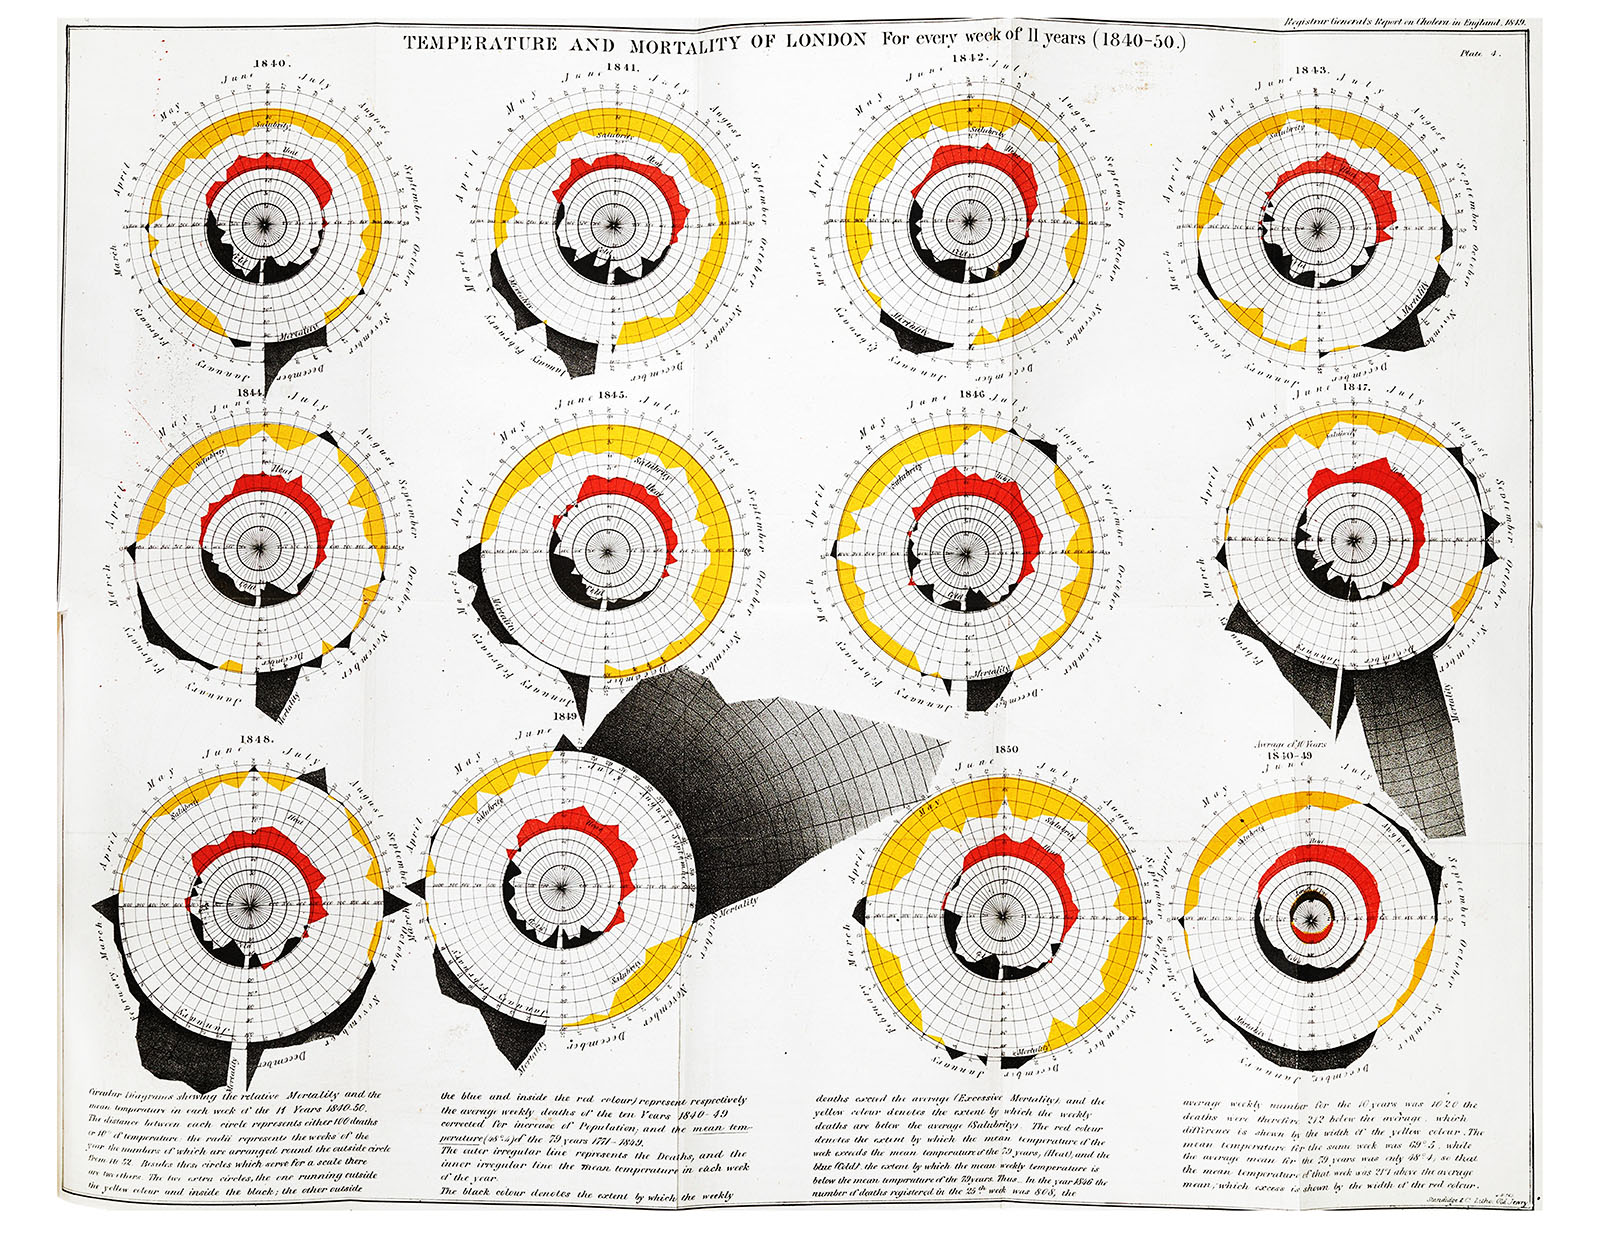 Temperature and Mortality of London, for every week of 11 years (1840-50) (Farr, 1852)